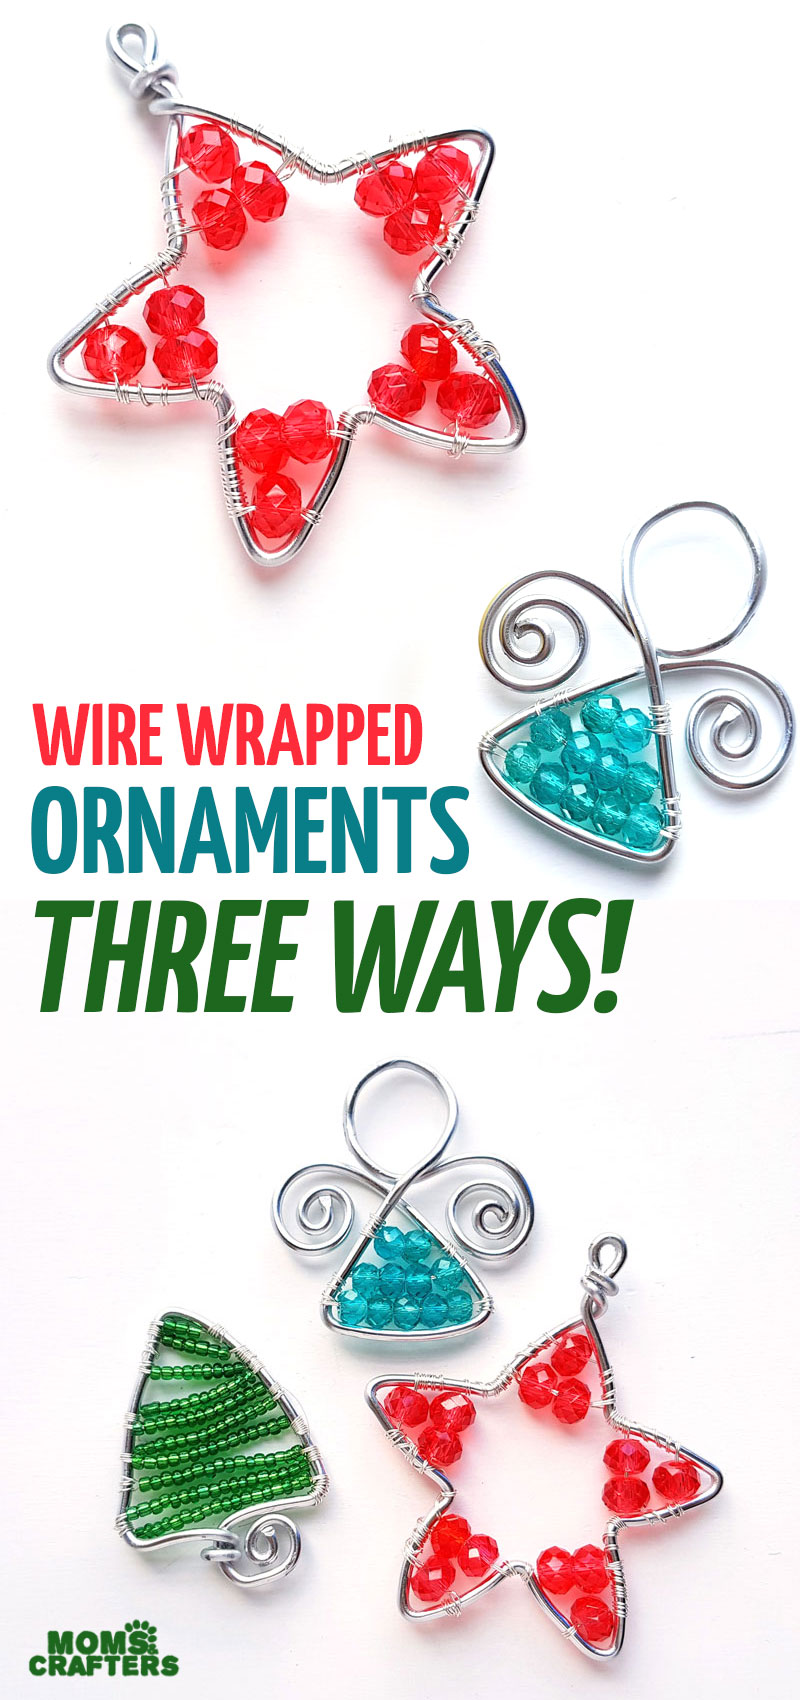 Click to learn how to make wire wrapped ornaments for your Christmas tree three ways! Make an angel ornament, a beaded tree and more cool wire wrapped ornament tutorials for adults!